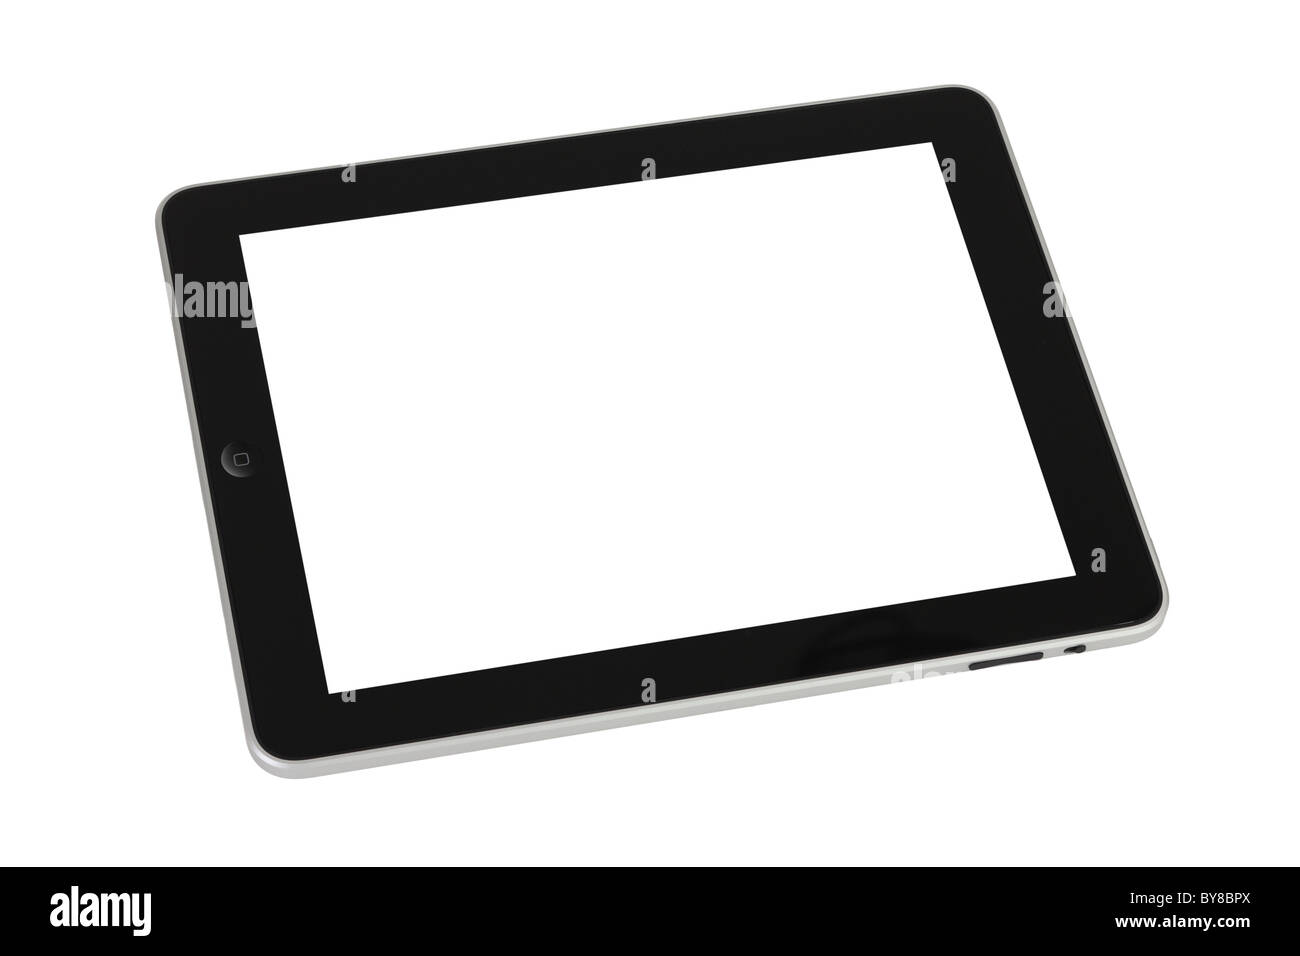 Apple ipad cutout on white background with blank screen - Stock Image